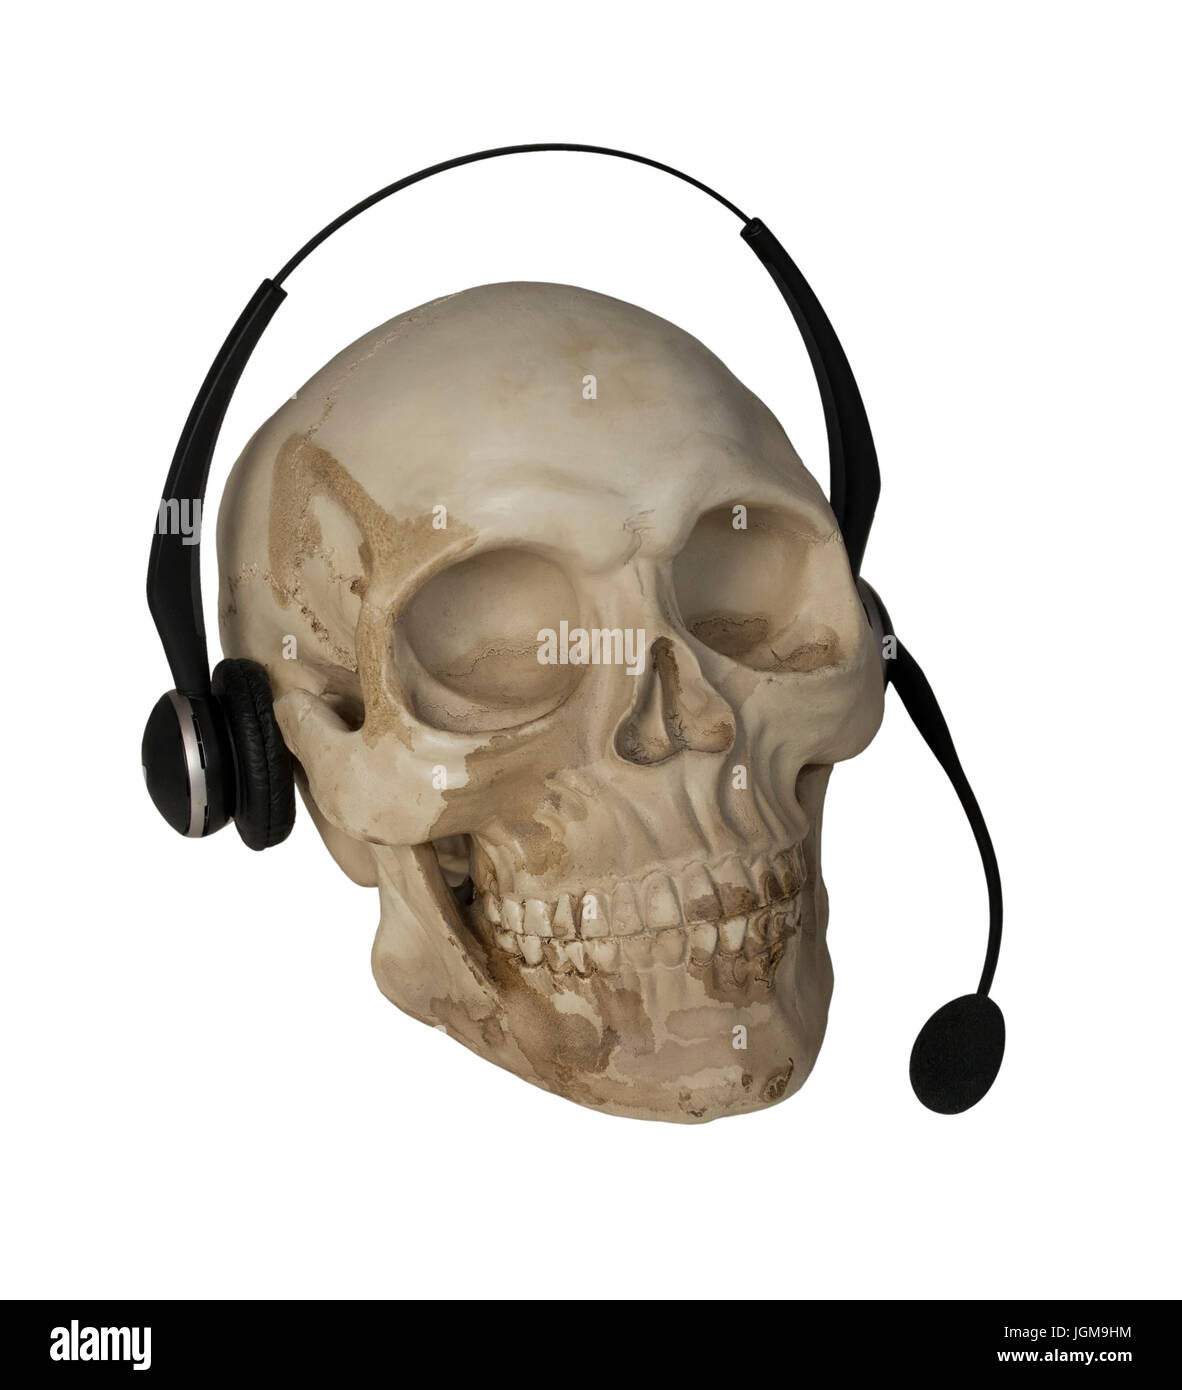 Audio microphone used to amplify communication On Skull - path included - Stock Image